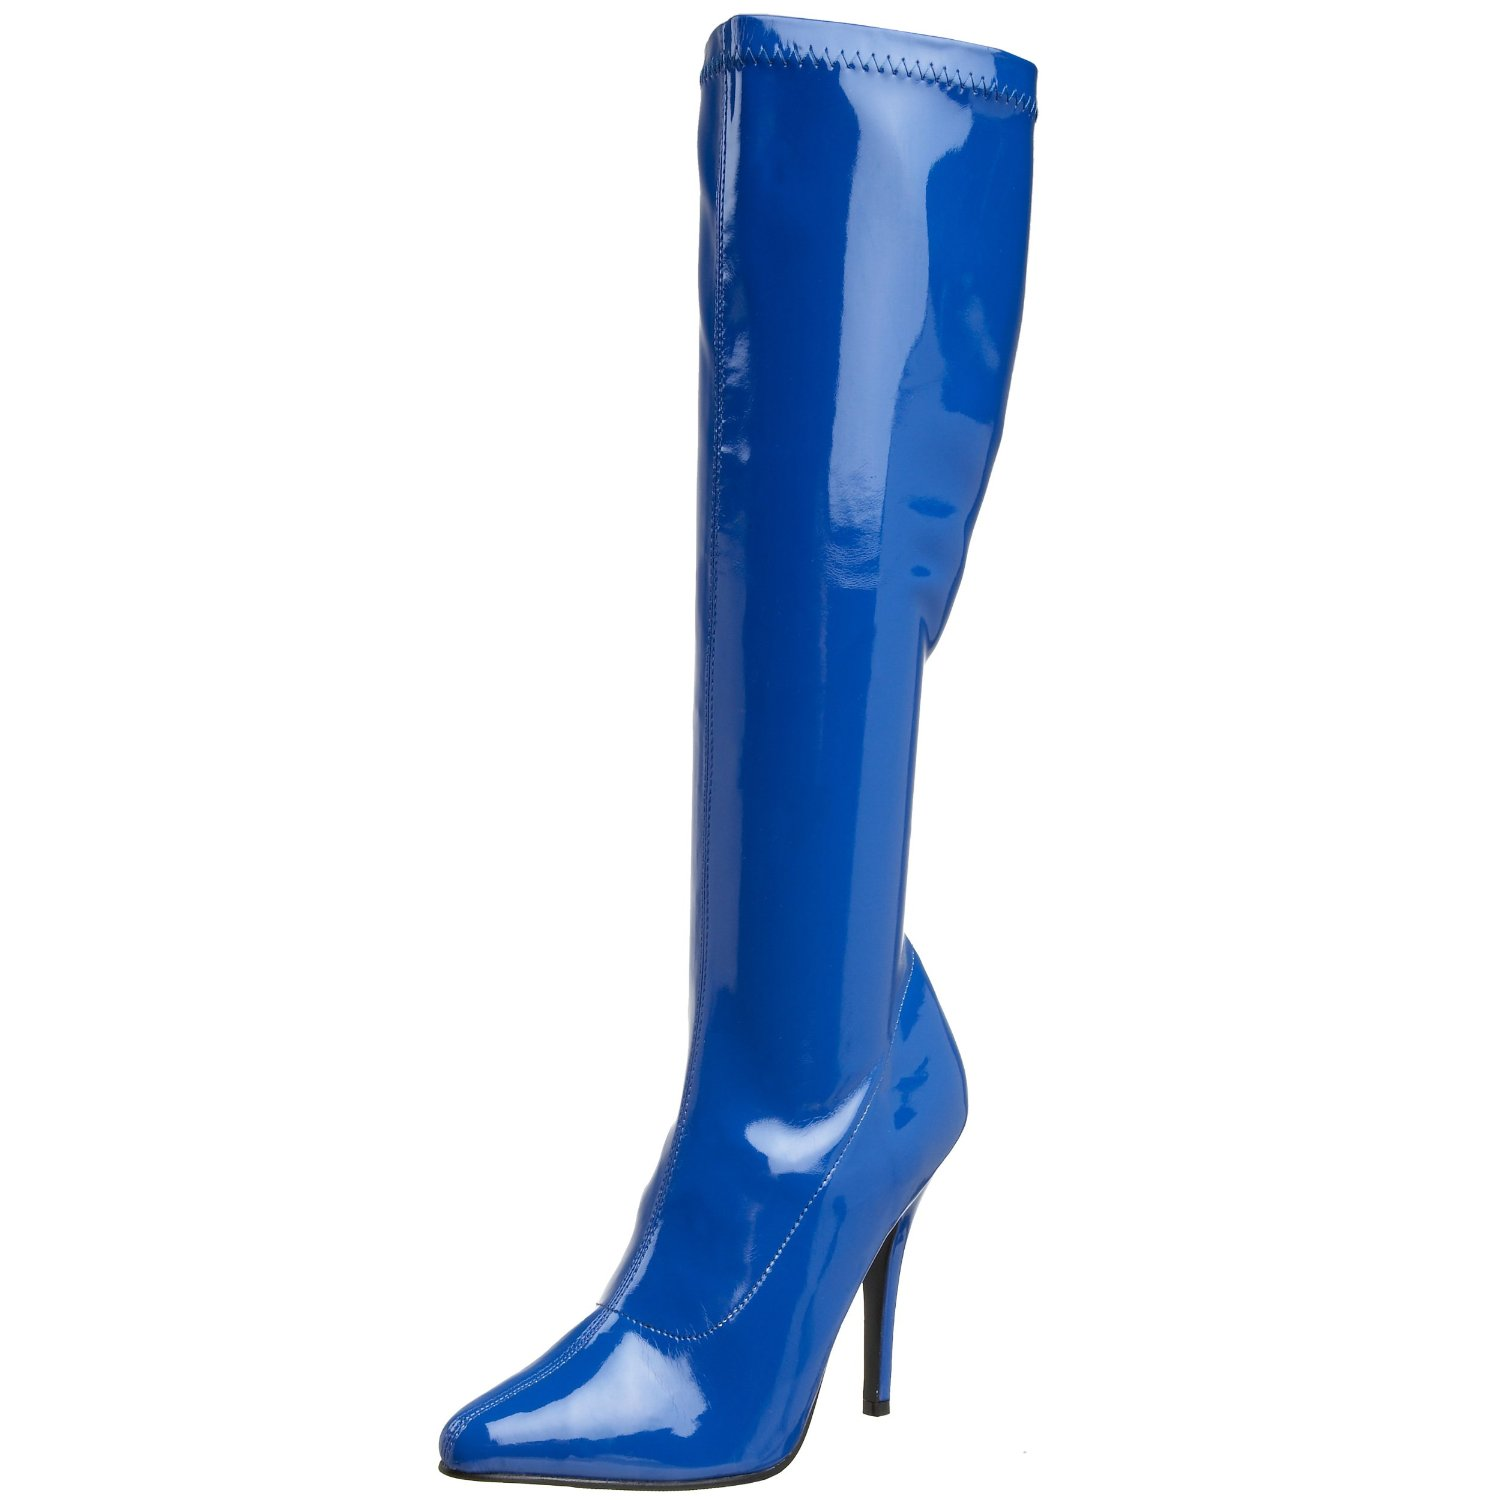 Blue Leather Boots For Women Collection Woman Fashion